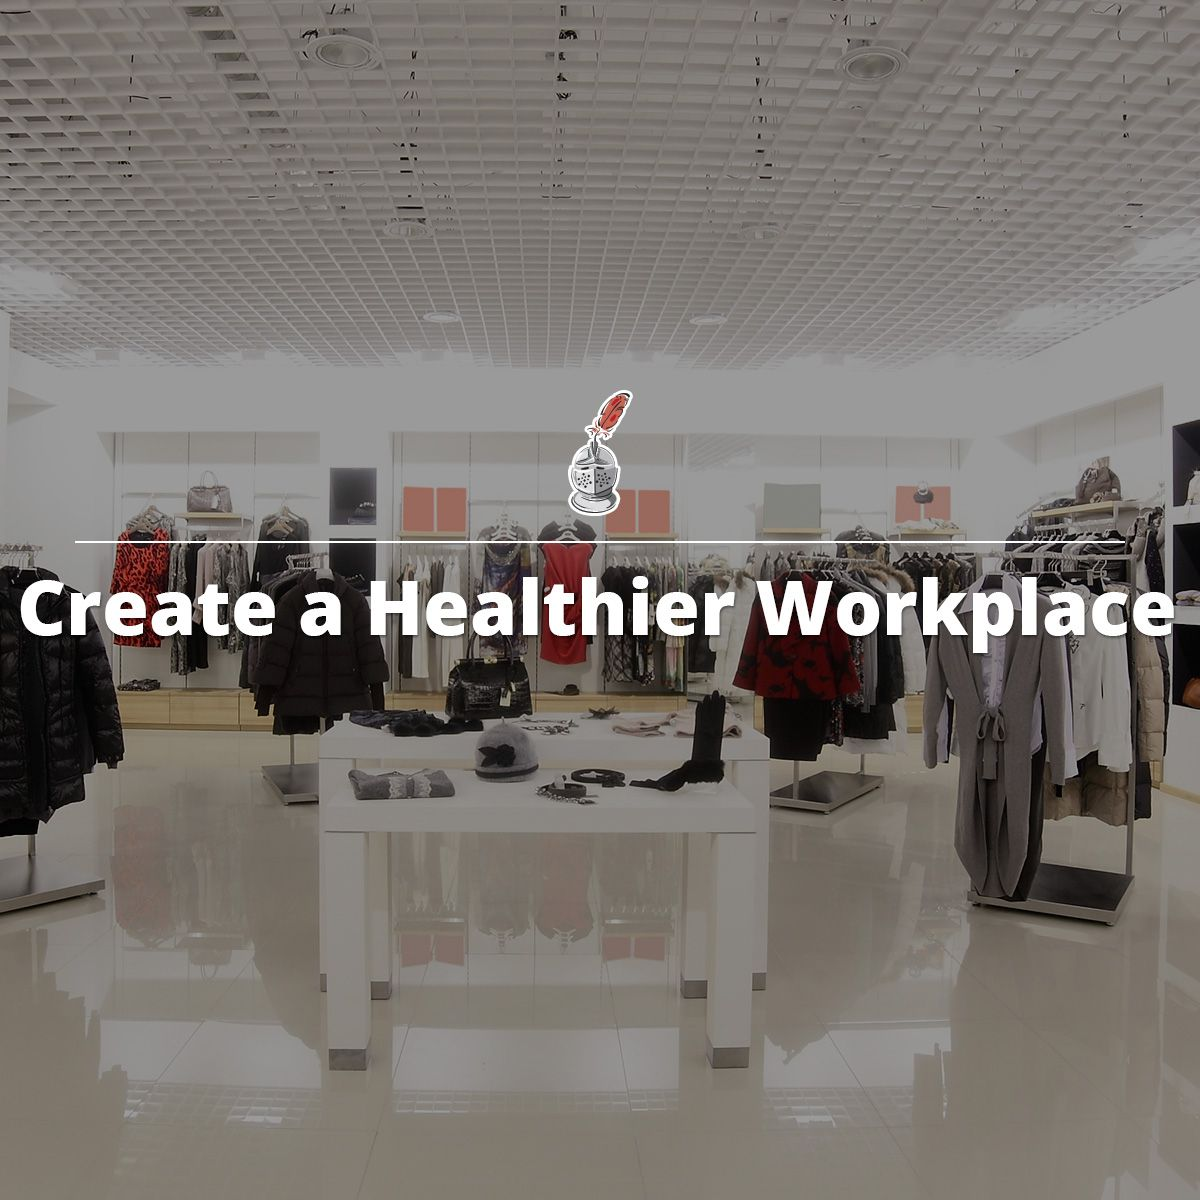 Create a Healthier Workplace